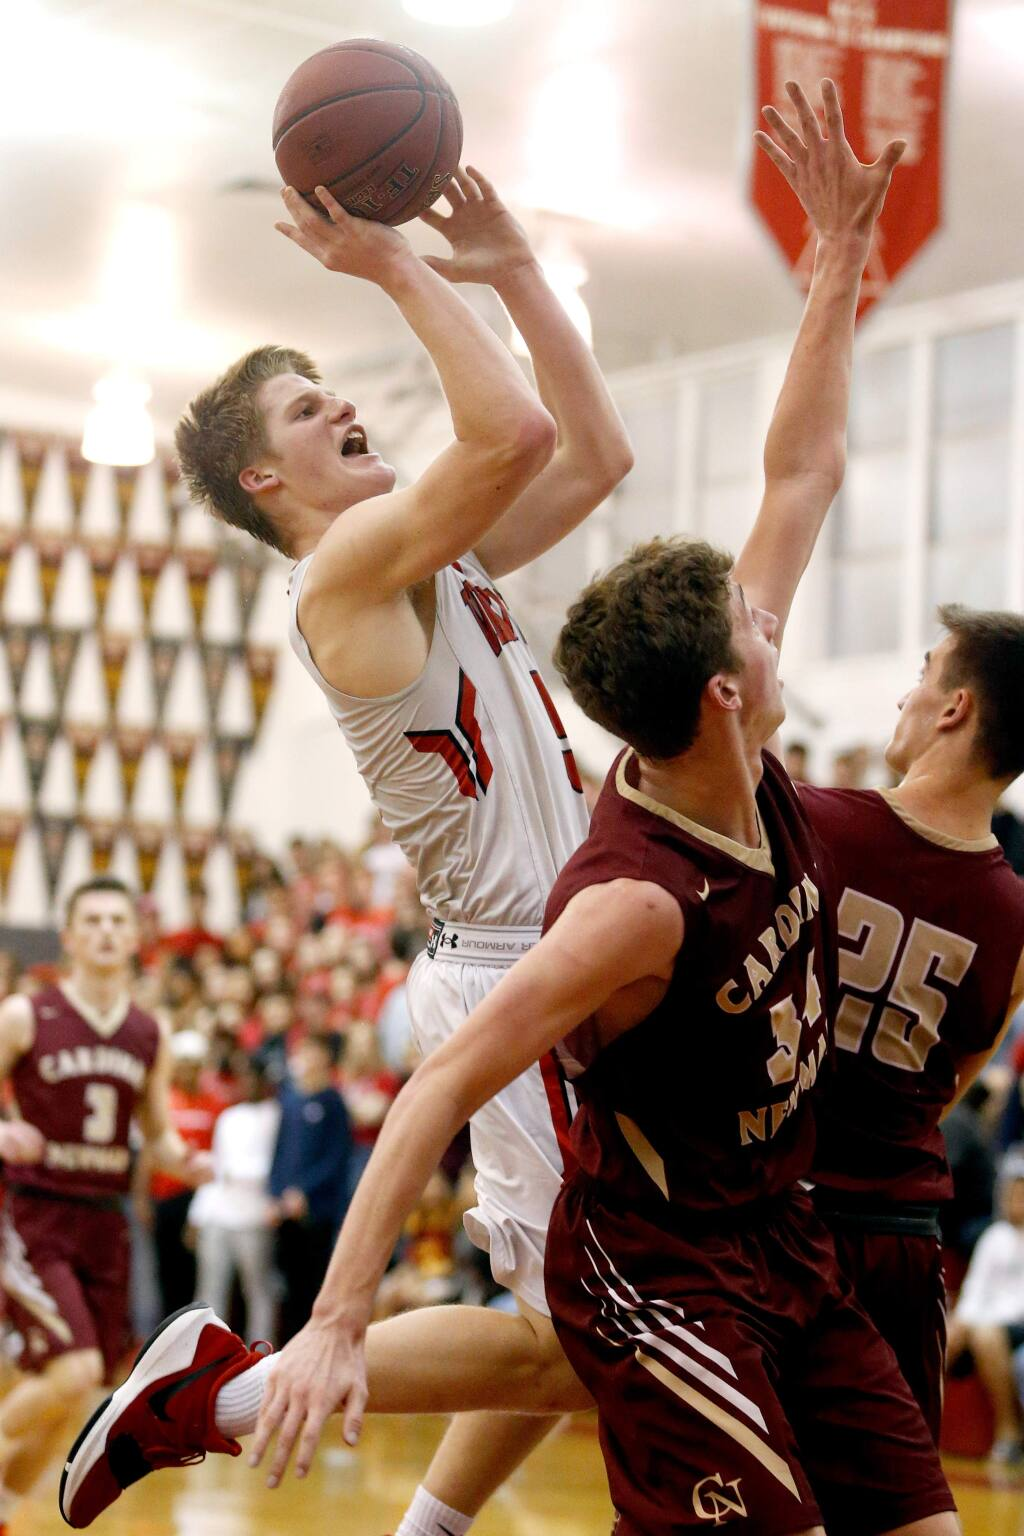 Montgomery's Evan Poulsen (5), left, goes for a shot and draws a foul during the first half of a boys varsity basketball game between Cardinal Newman and Montgomery high school in Santa Rosa, California on Tuesday, January 9, 2018. (Alvin Jornada / The Press Democrat)